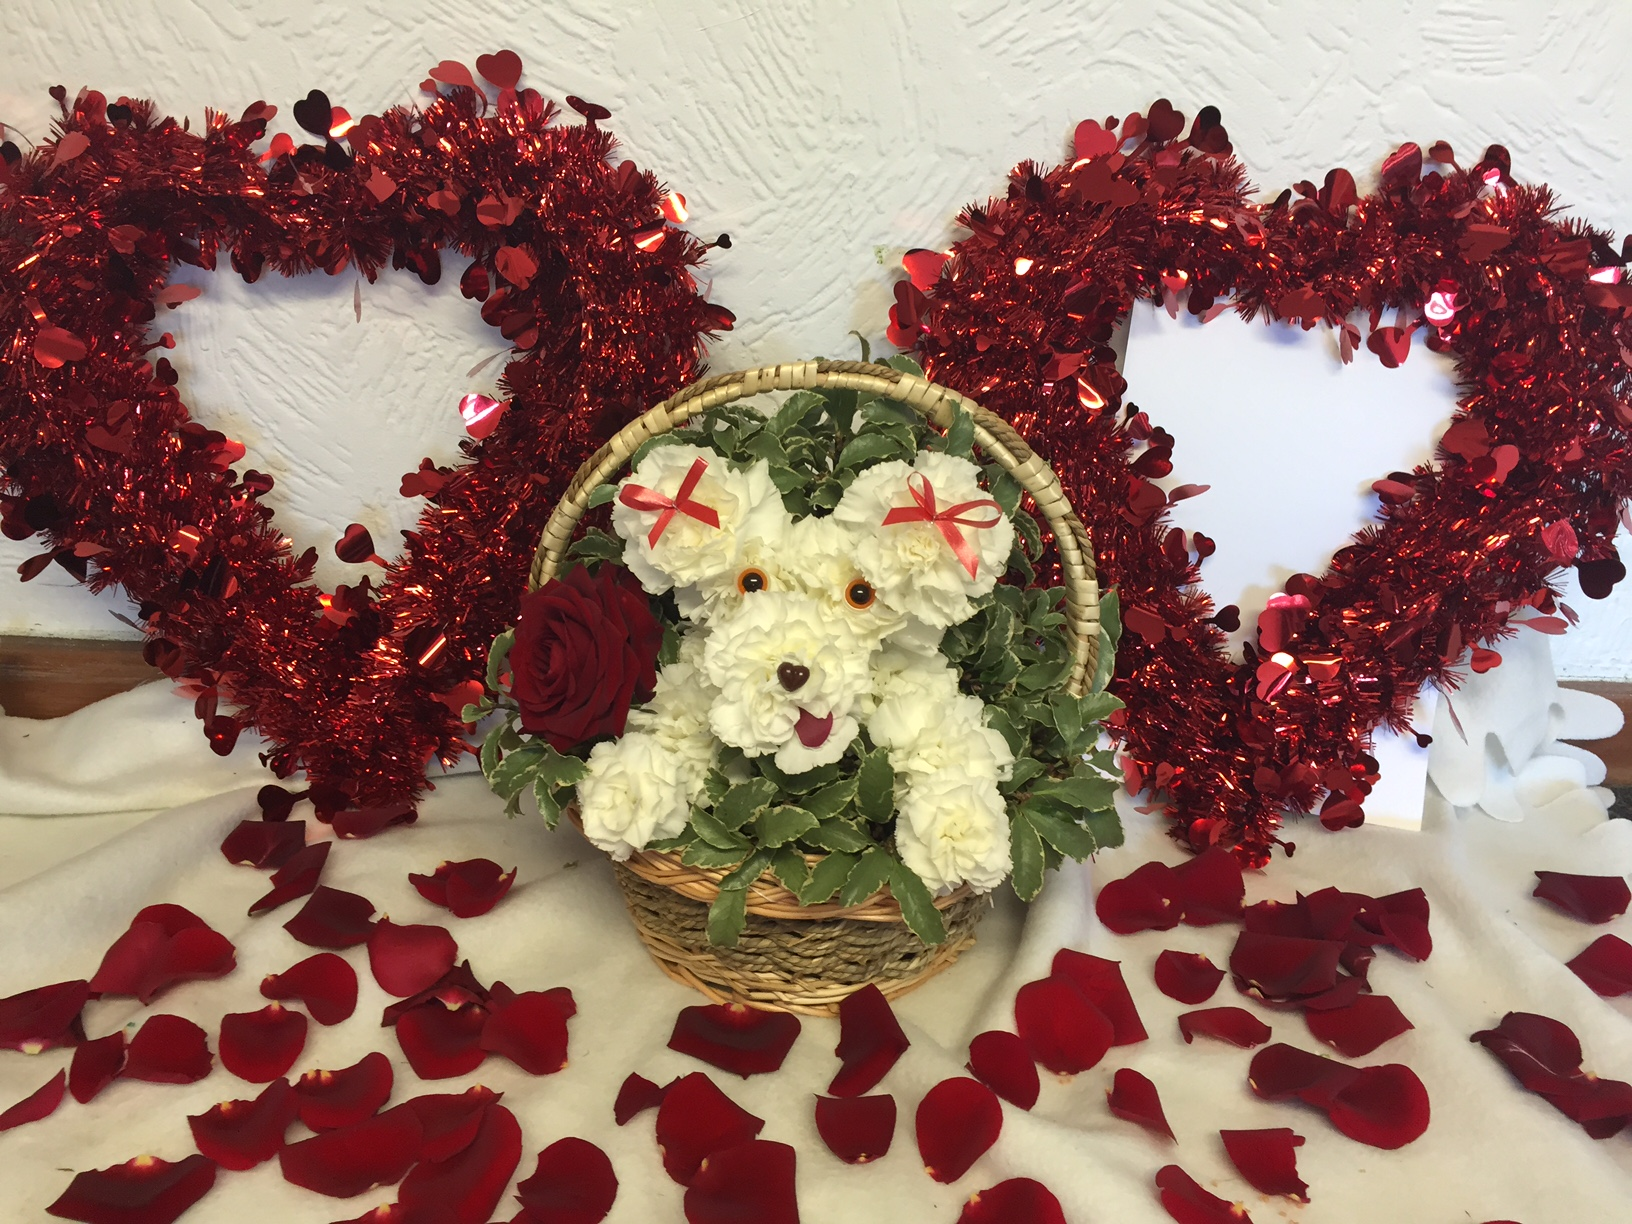 How to make a Puppy Dog in a Basket from Flowers